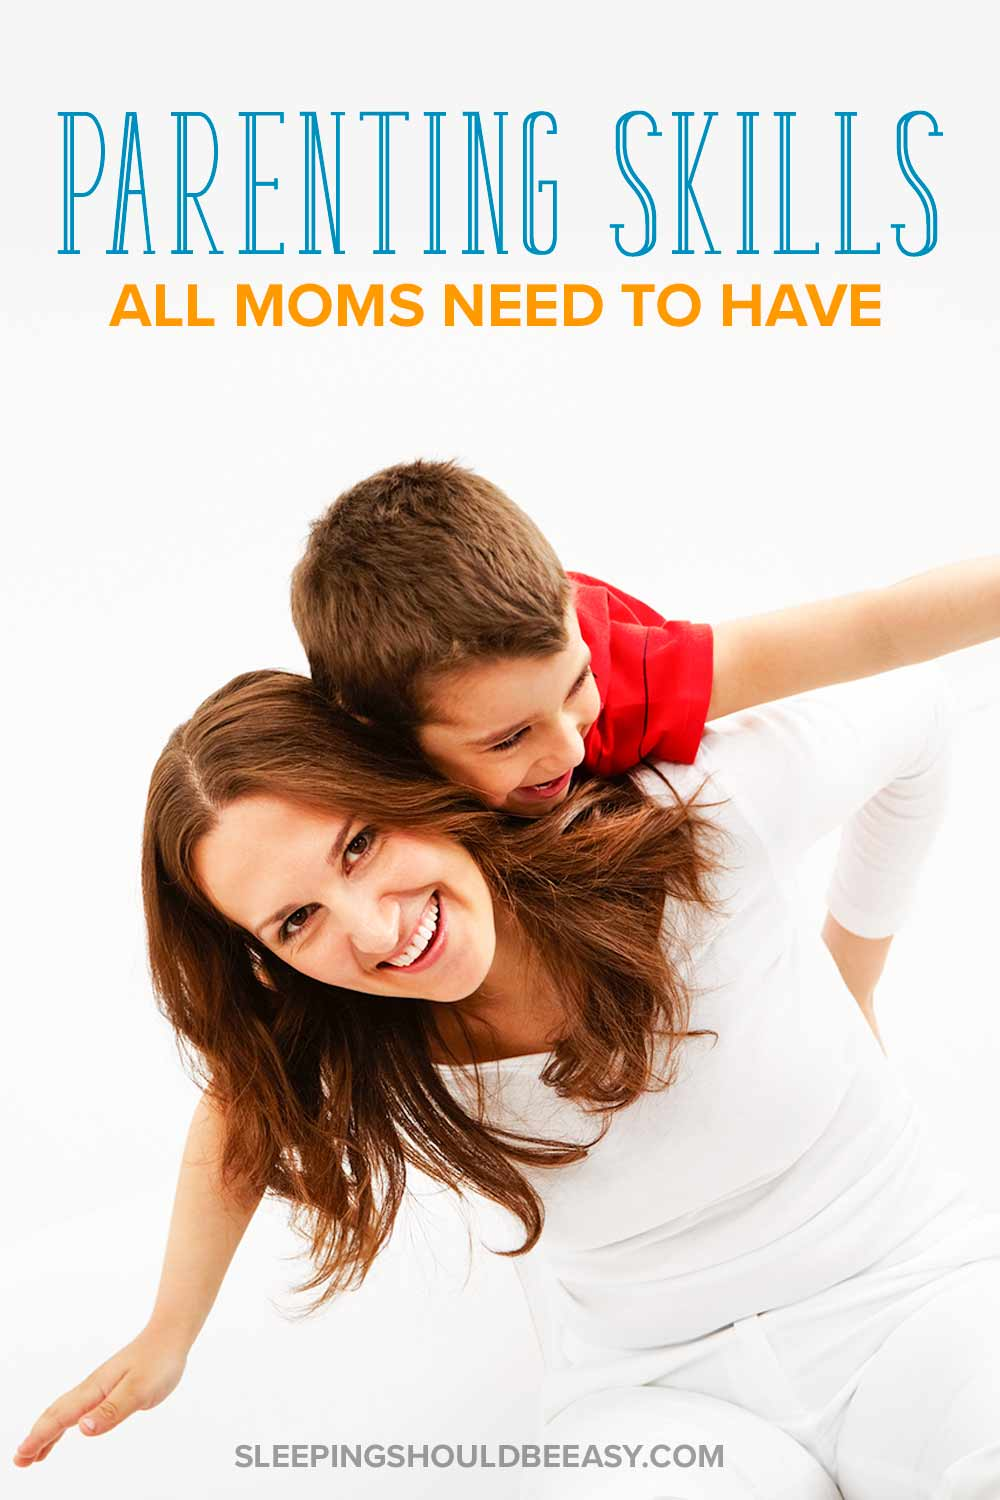 Mom and her son playing: Parenting skills all parents should have